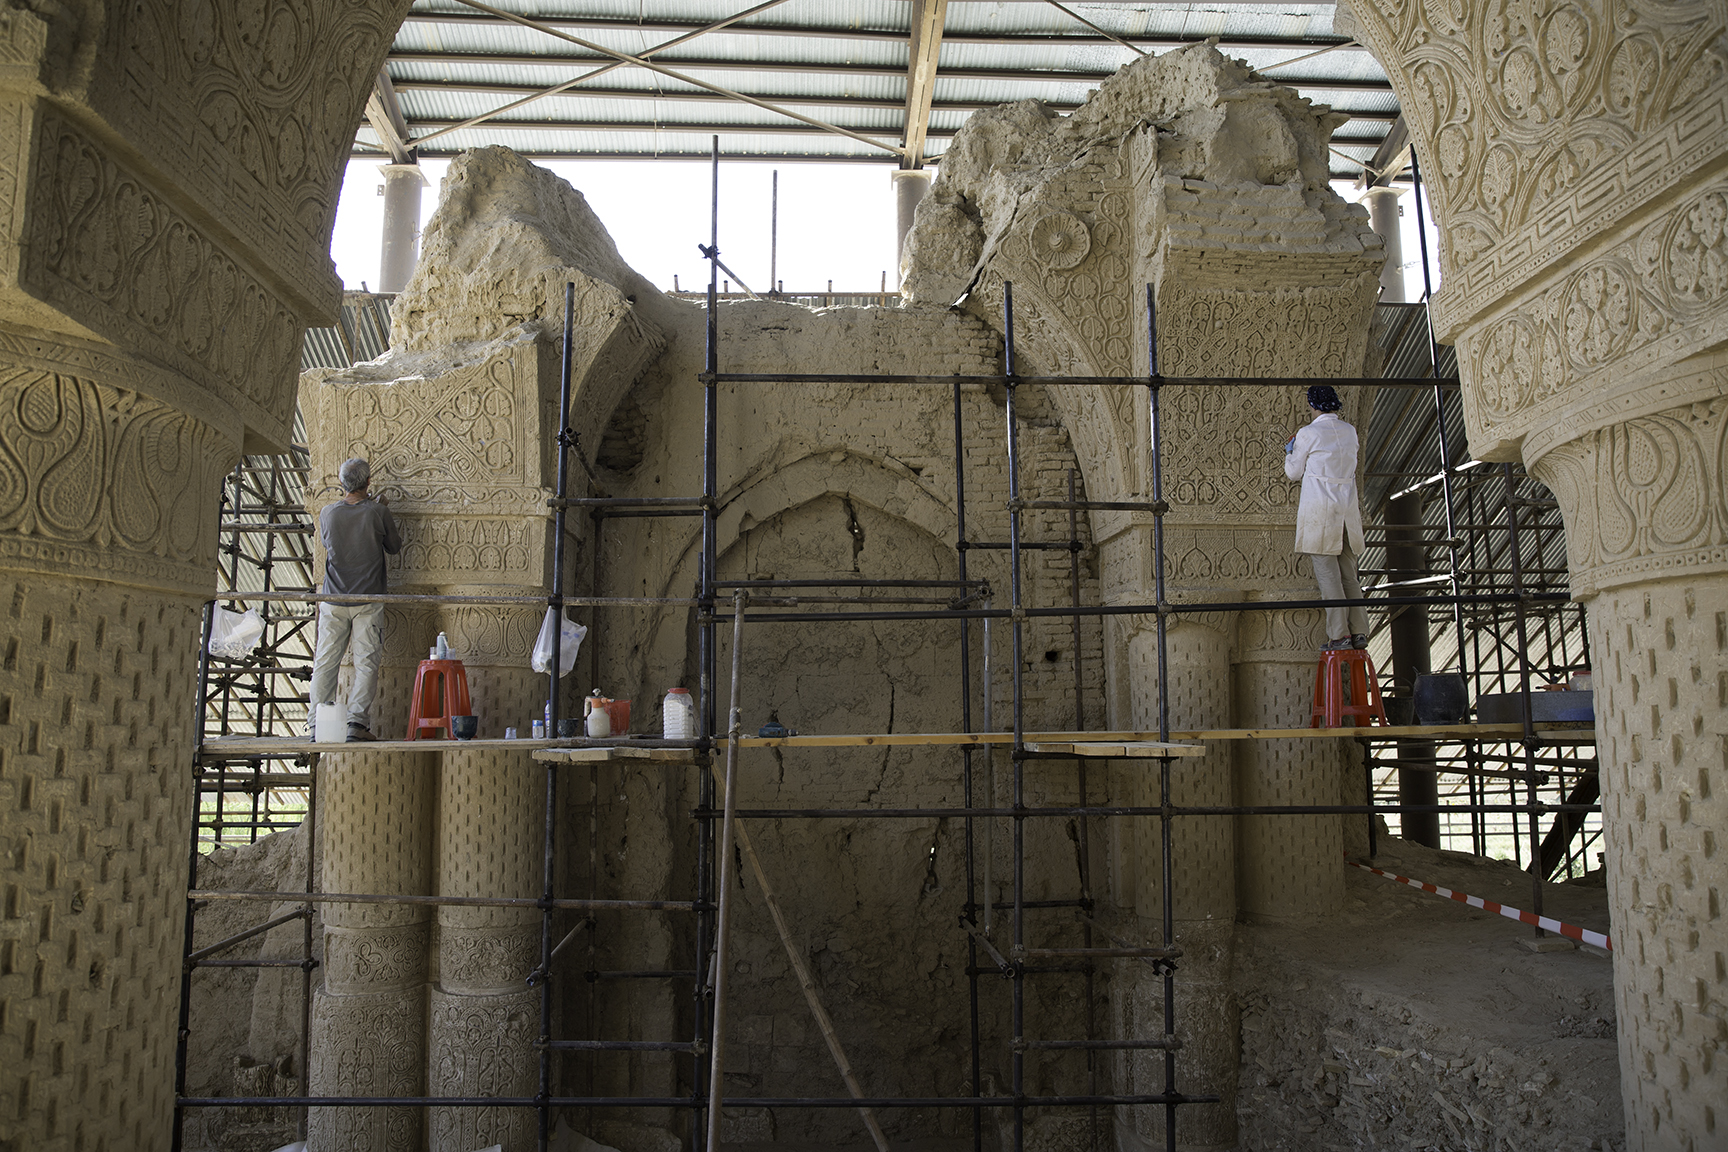 The crafted stucco adorning the eighth century CE pillars of Noh Gunbad in Balkh is stabilized by conservation experts to maintain their intricate and unique decorative forms. An international team of experts, led by the Aga Khan Trust for Culture, has conducted groundbreaking preservation work at this site since 2009.